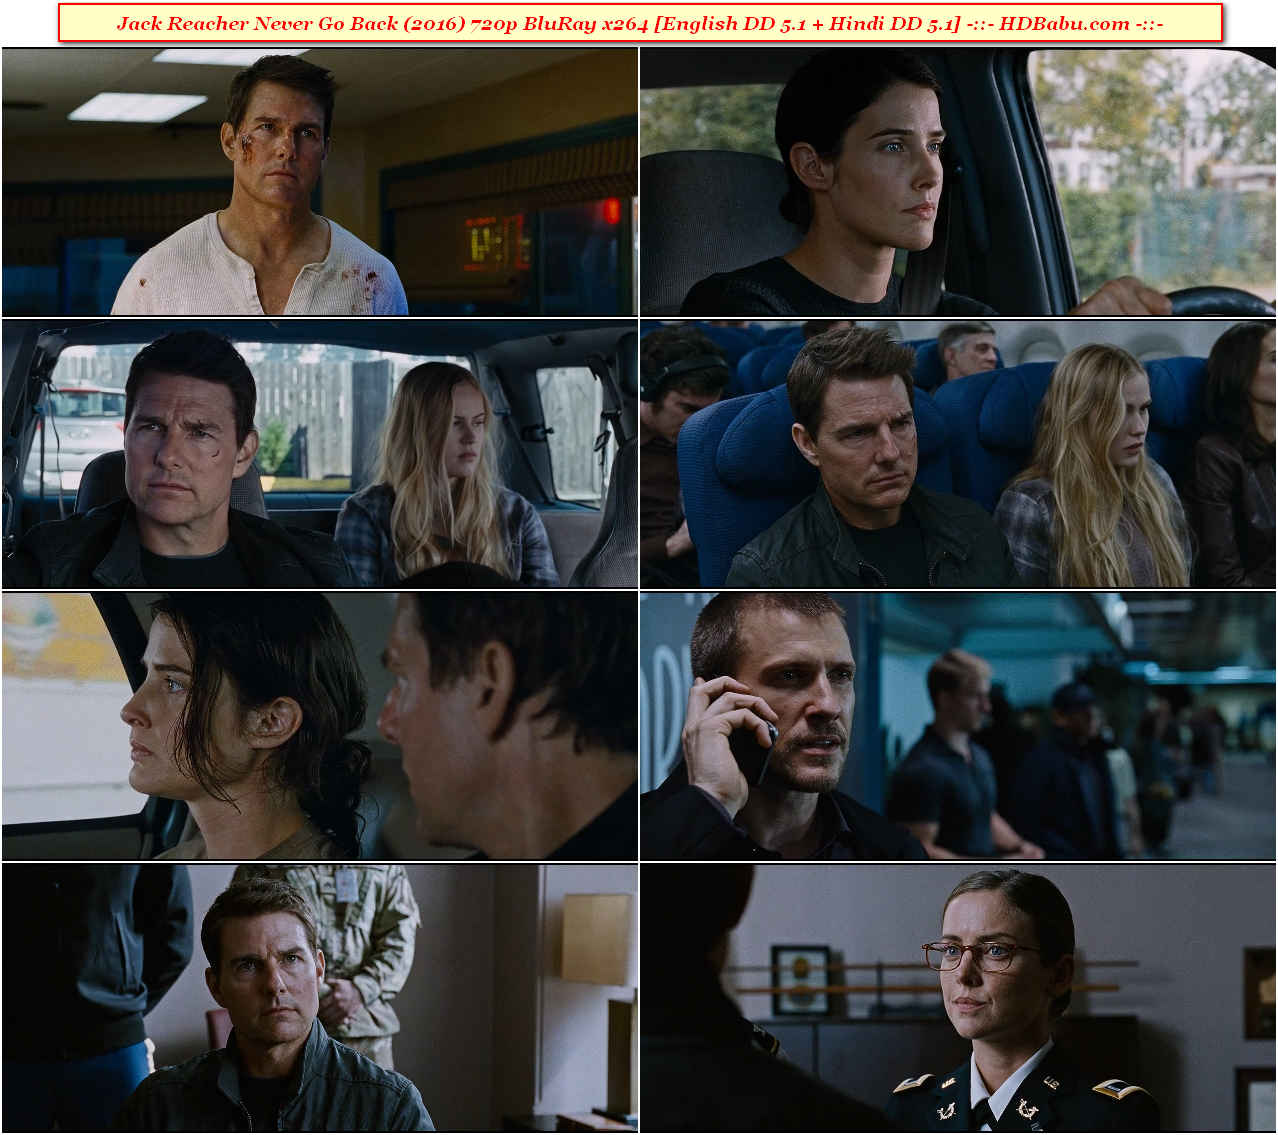 Jack Reacher Never Go Back Full Movie Download 720p Blu-Ray